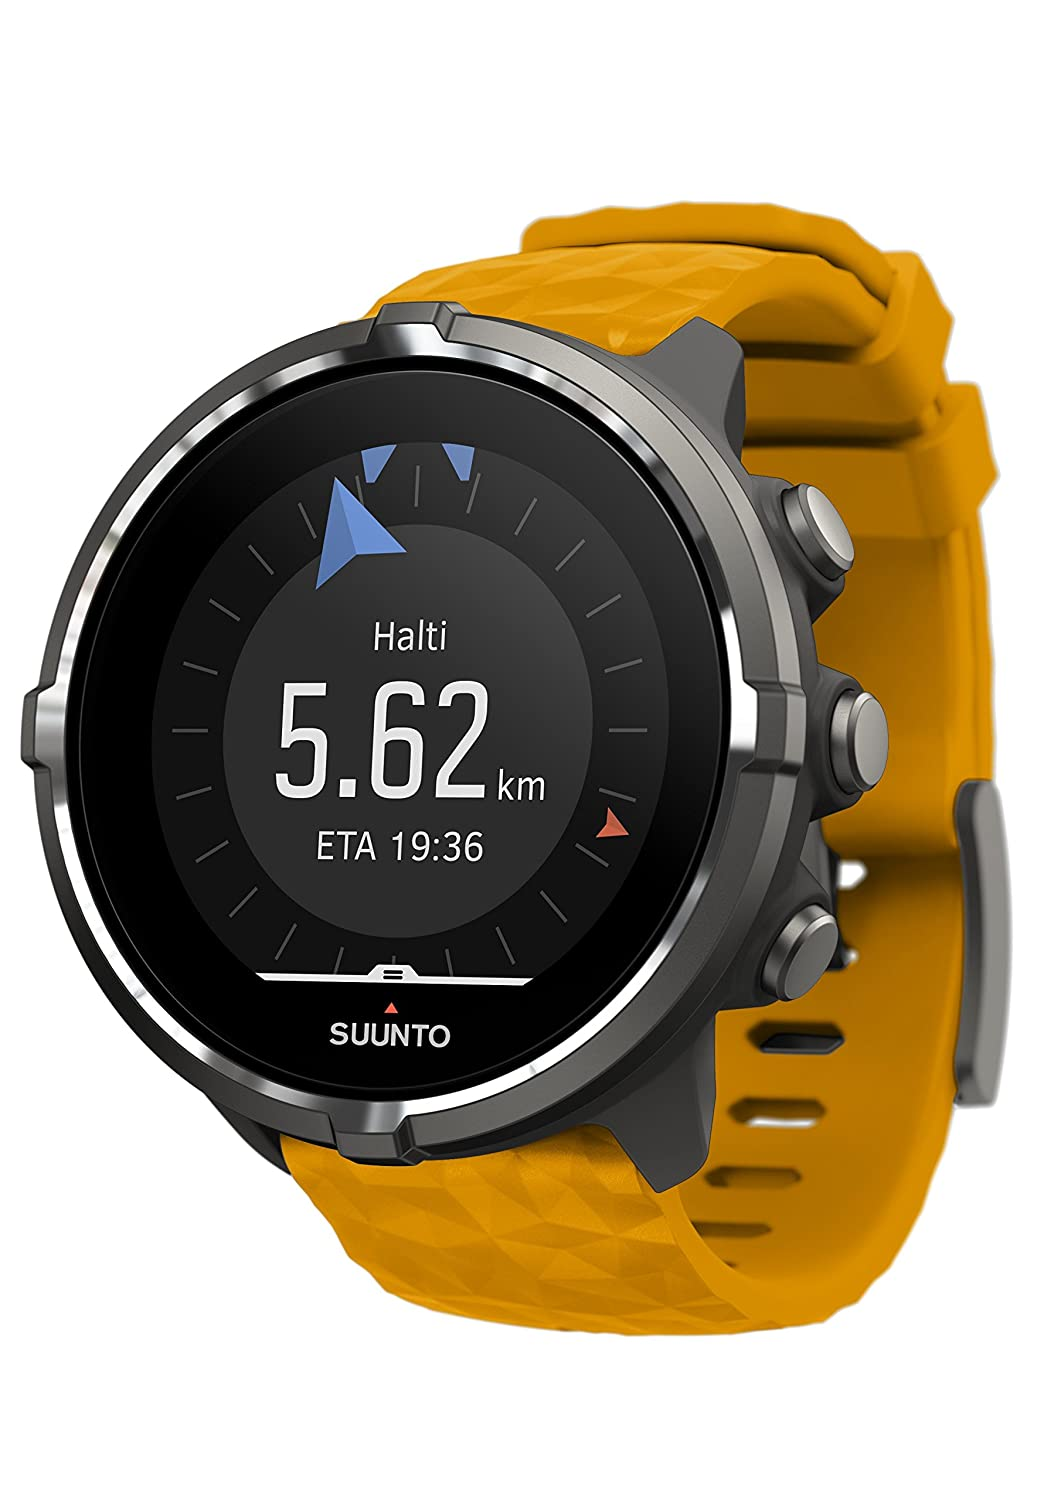 Amazon.com: SUUNTO Spartan Sport Wrist HR BARO (Amber): Cell Phones & Accessories